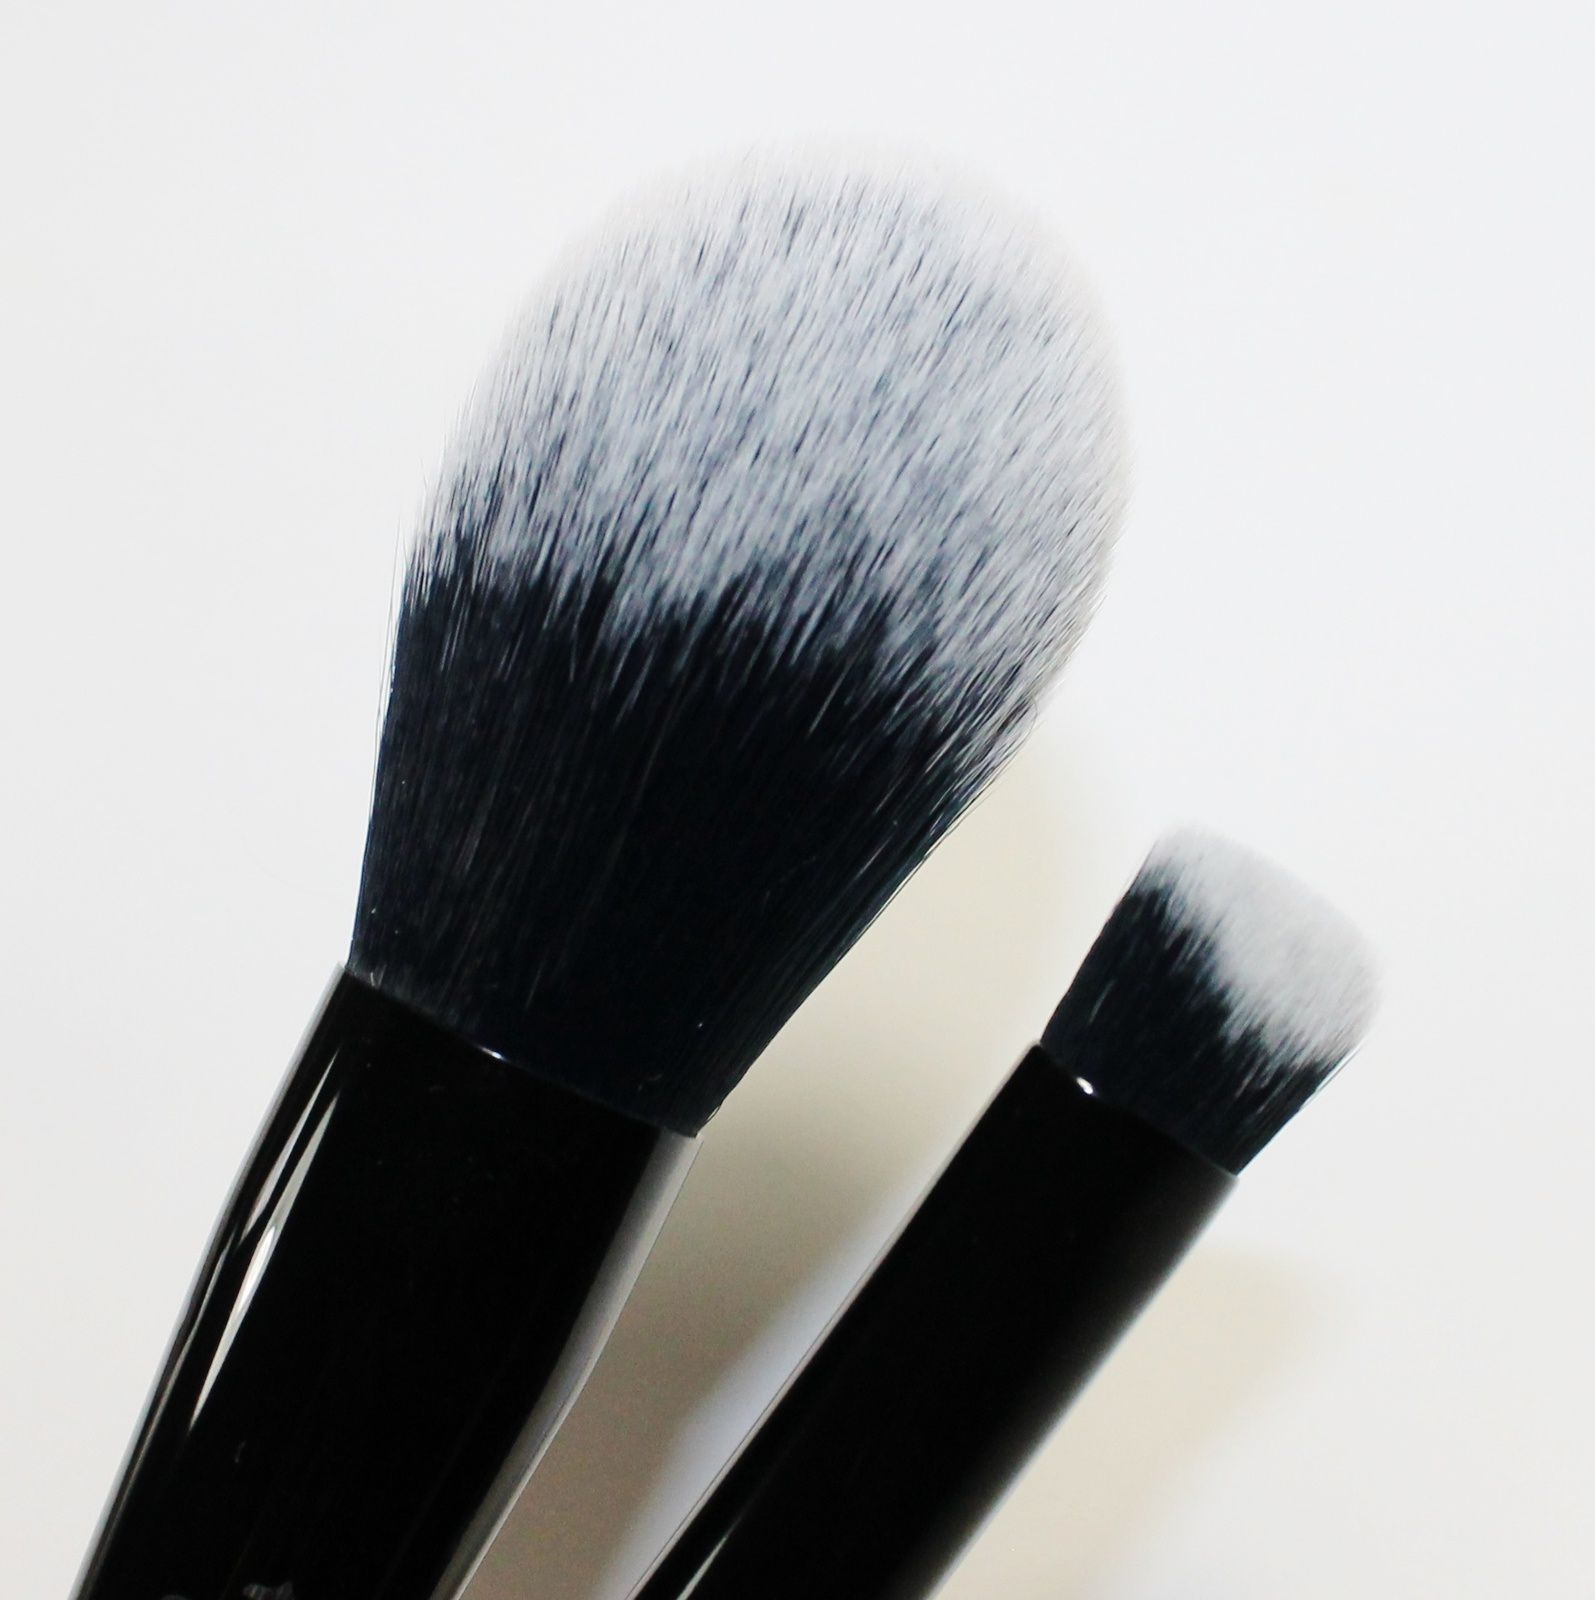 Kat Von D Lock-It Setting Powder Brush and Lock-It Edge Concealer Brush